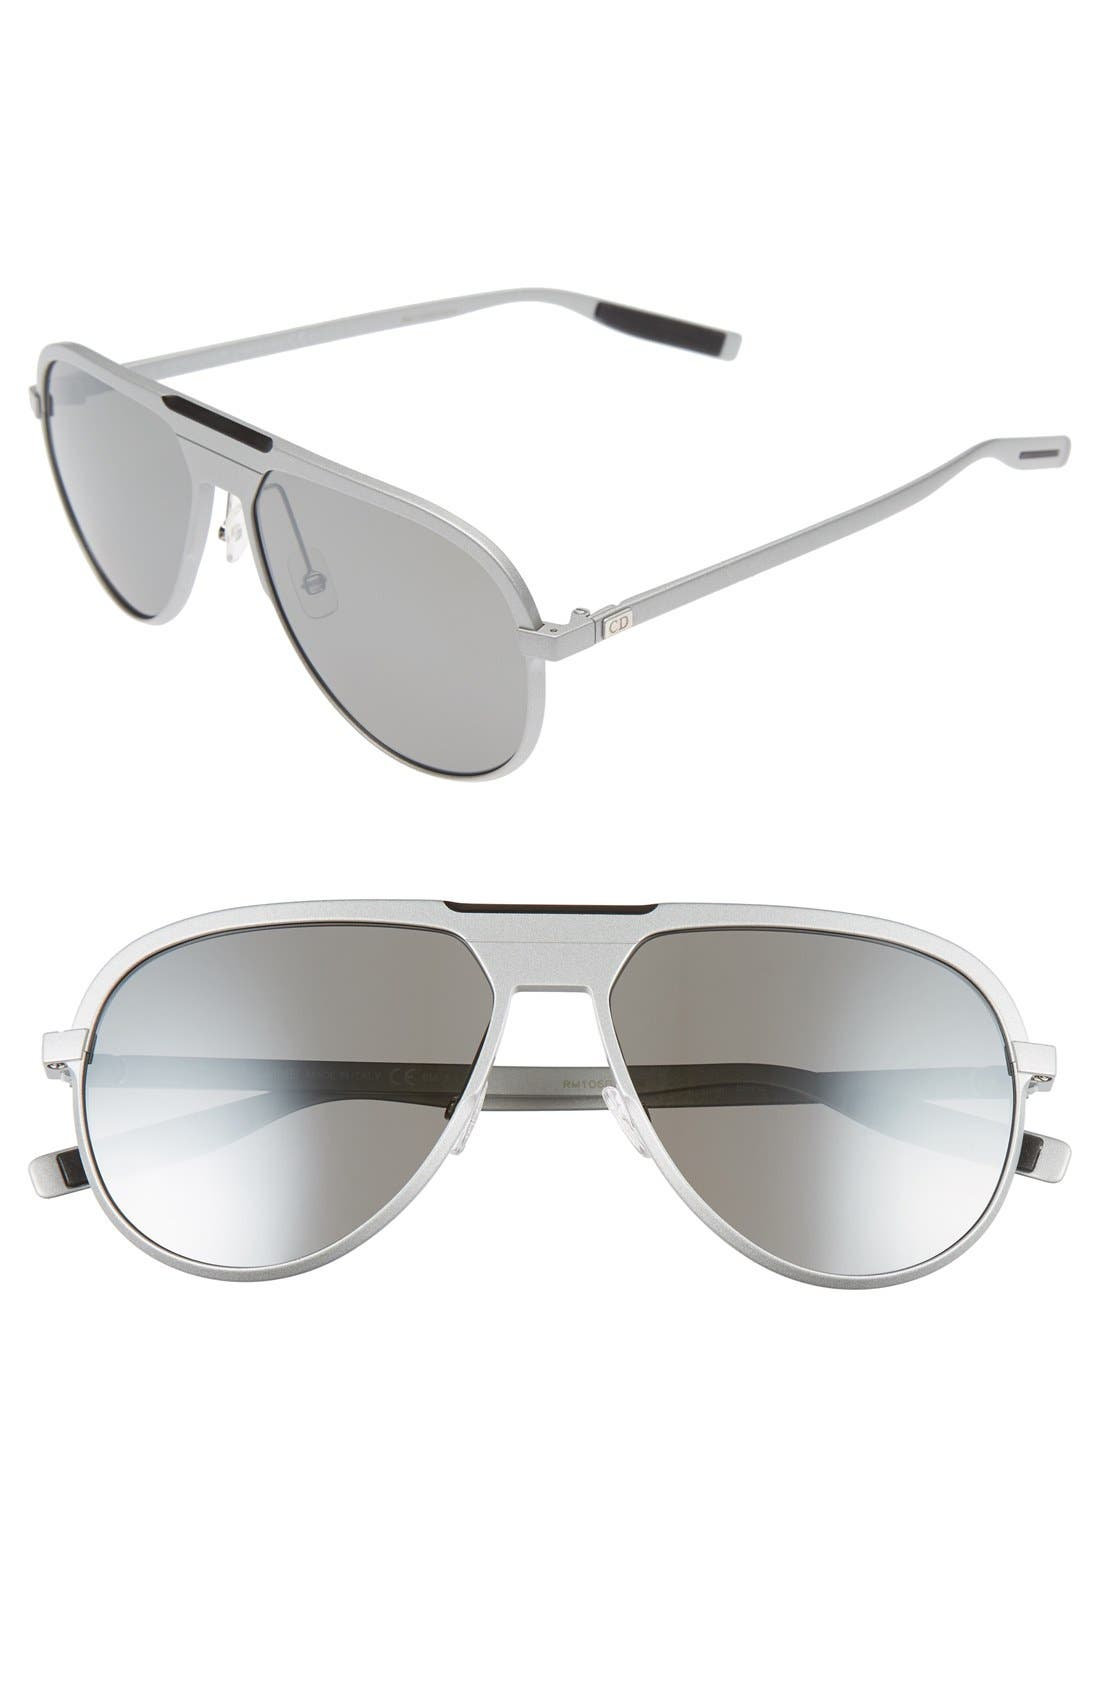 59mm Aviator Sunglasses,                             Main thumbnail 1, color,                             Matte Palladium